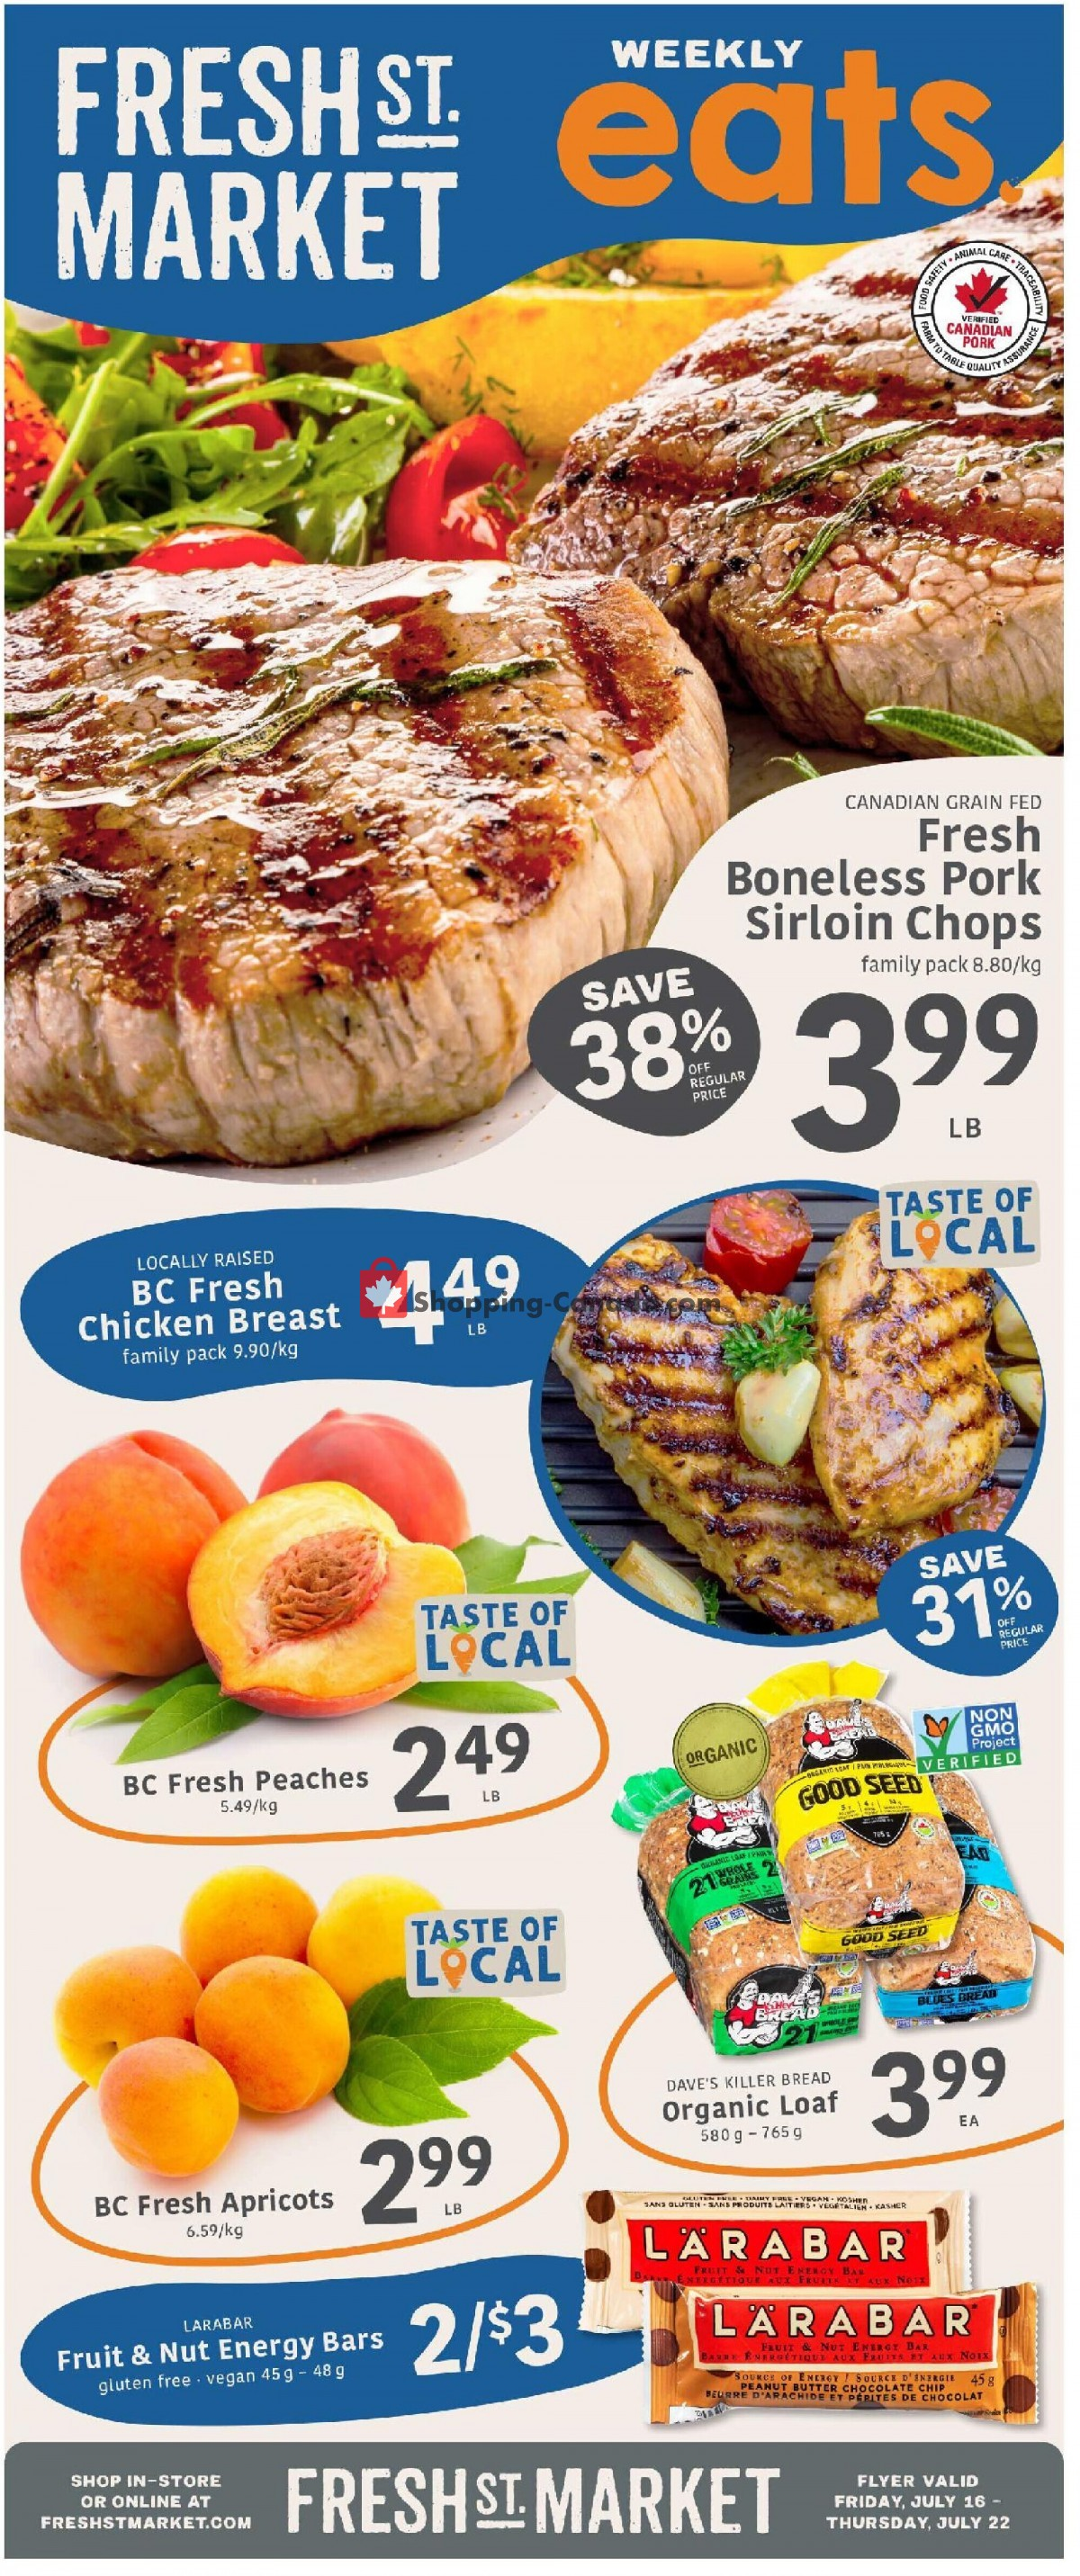 Flyer Fresh St. Market Canada - from Friday July 16, 2021 to Thursday July 22, 2021